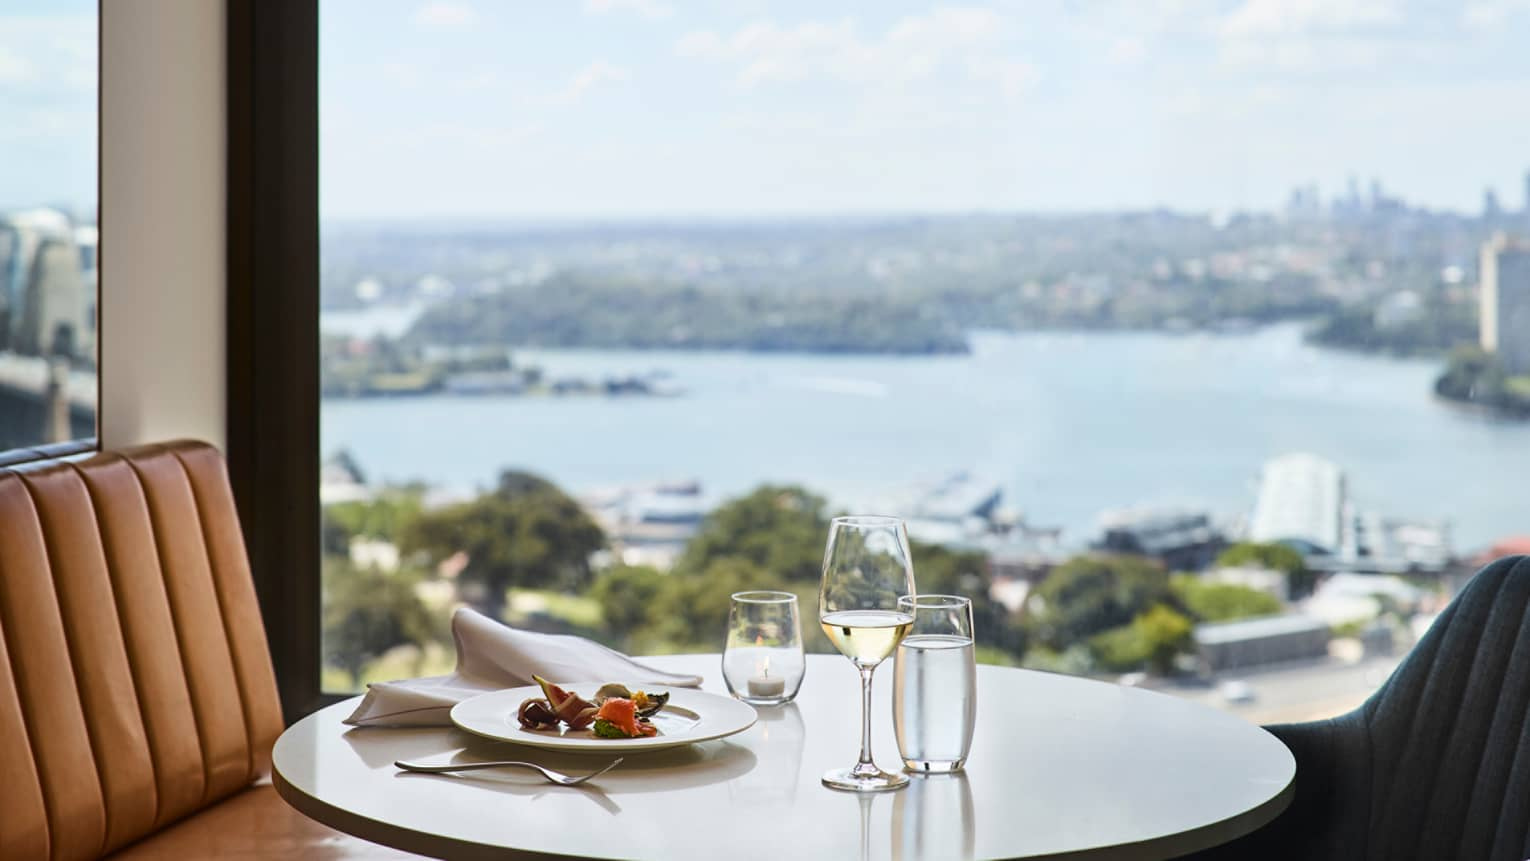 Lounge 32 meal, glass of white wine on round table by window with harbour views